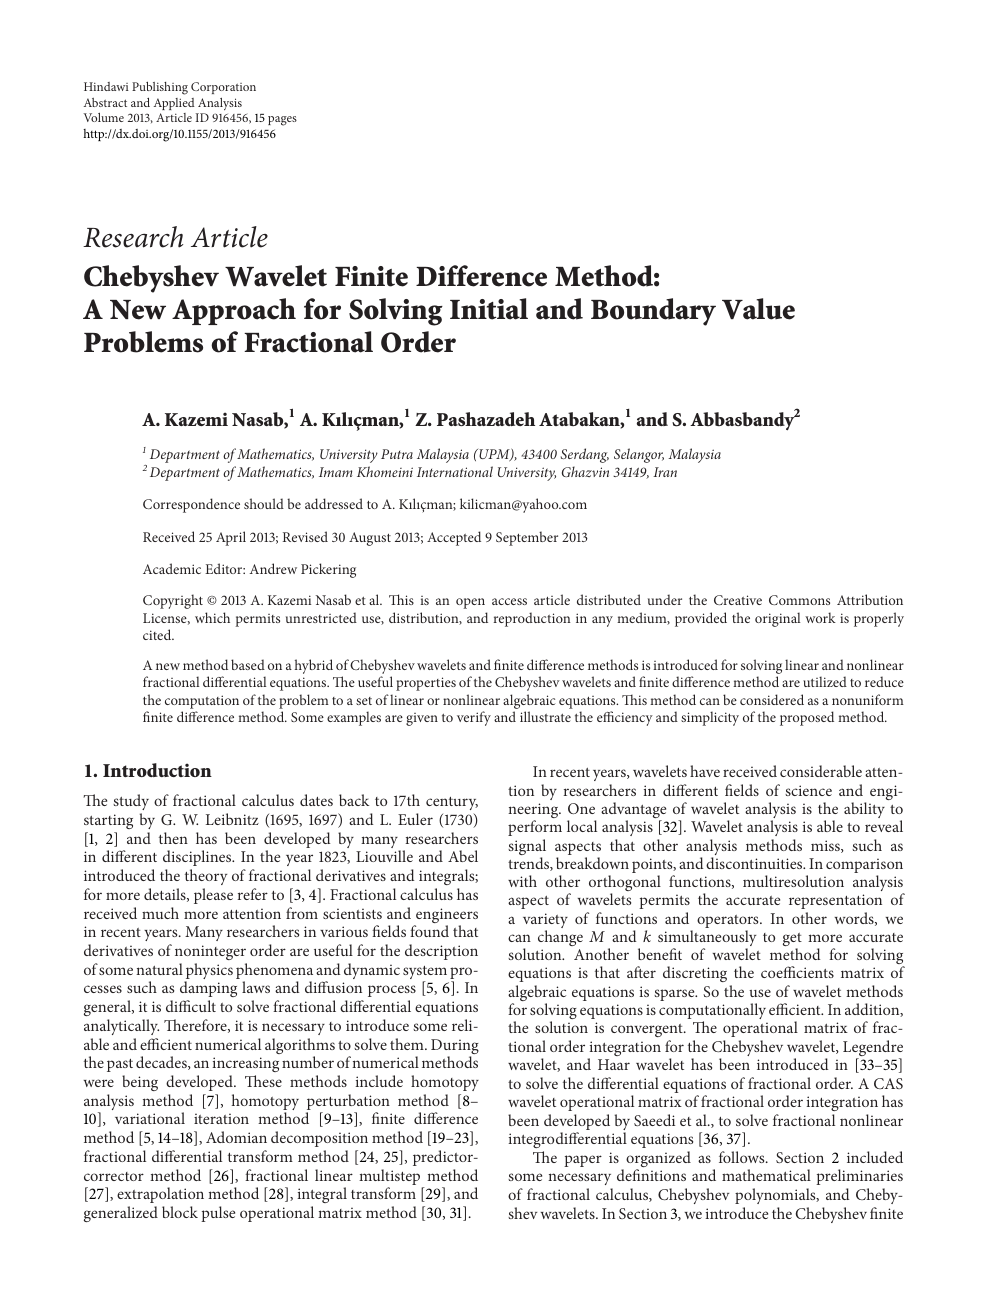 Chebyshev Wavelet Finite Difference Method: A New Approach